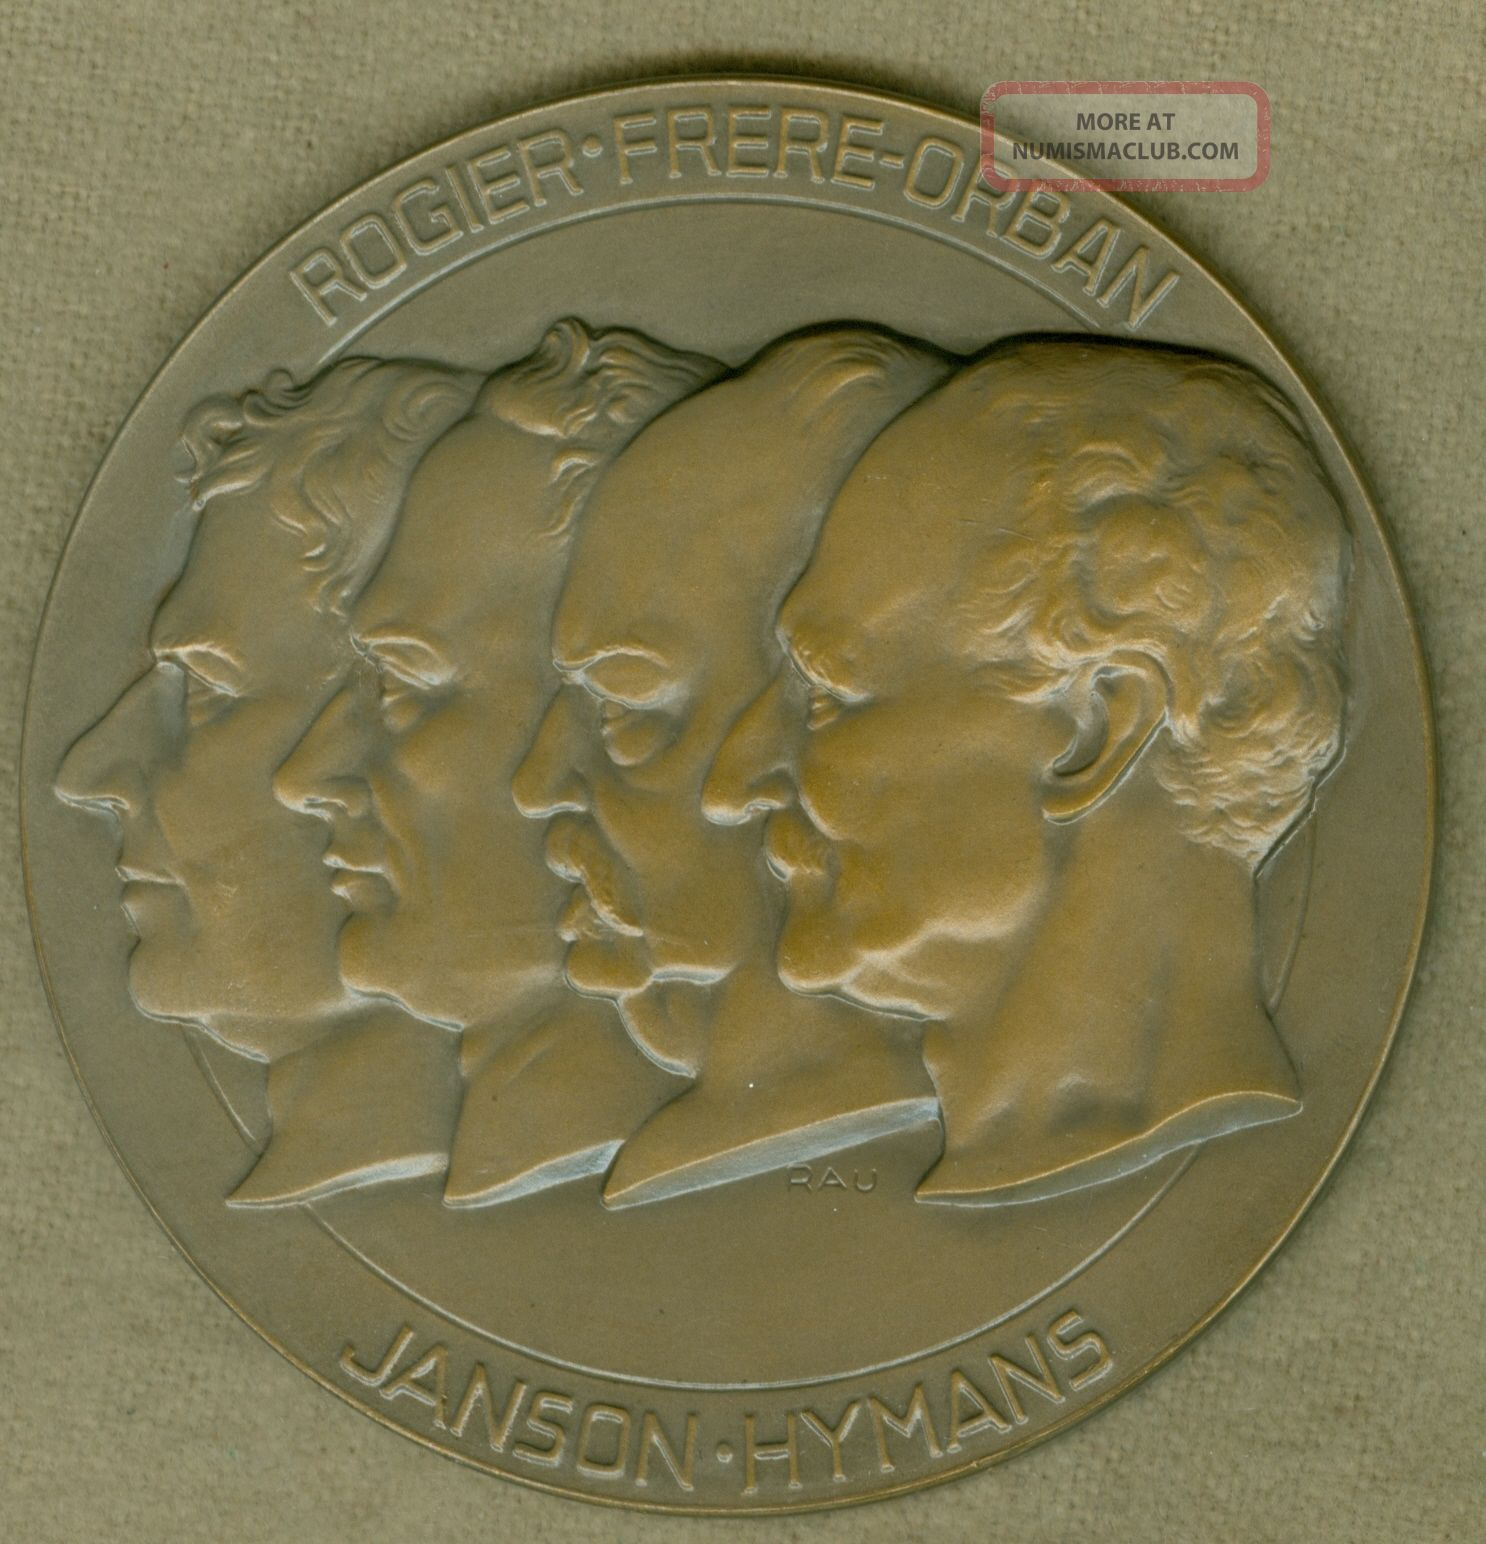 1946 Belgium Medal For The 100 Year Anniversary Of The Liberal Party,  By Rau Exonumia photo